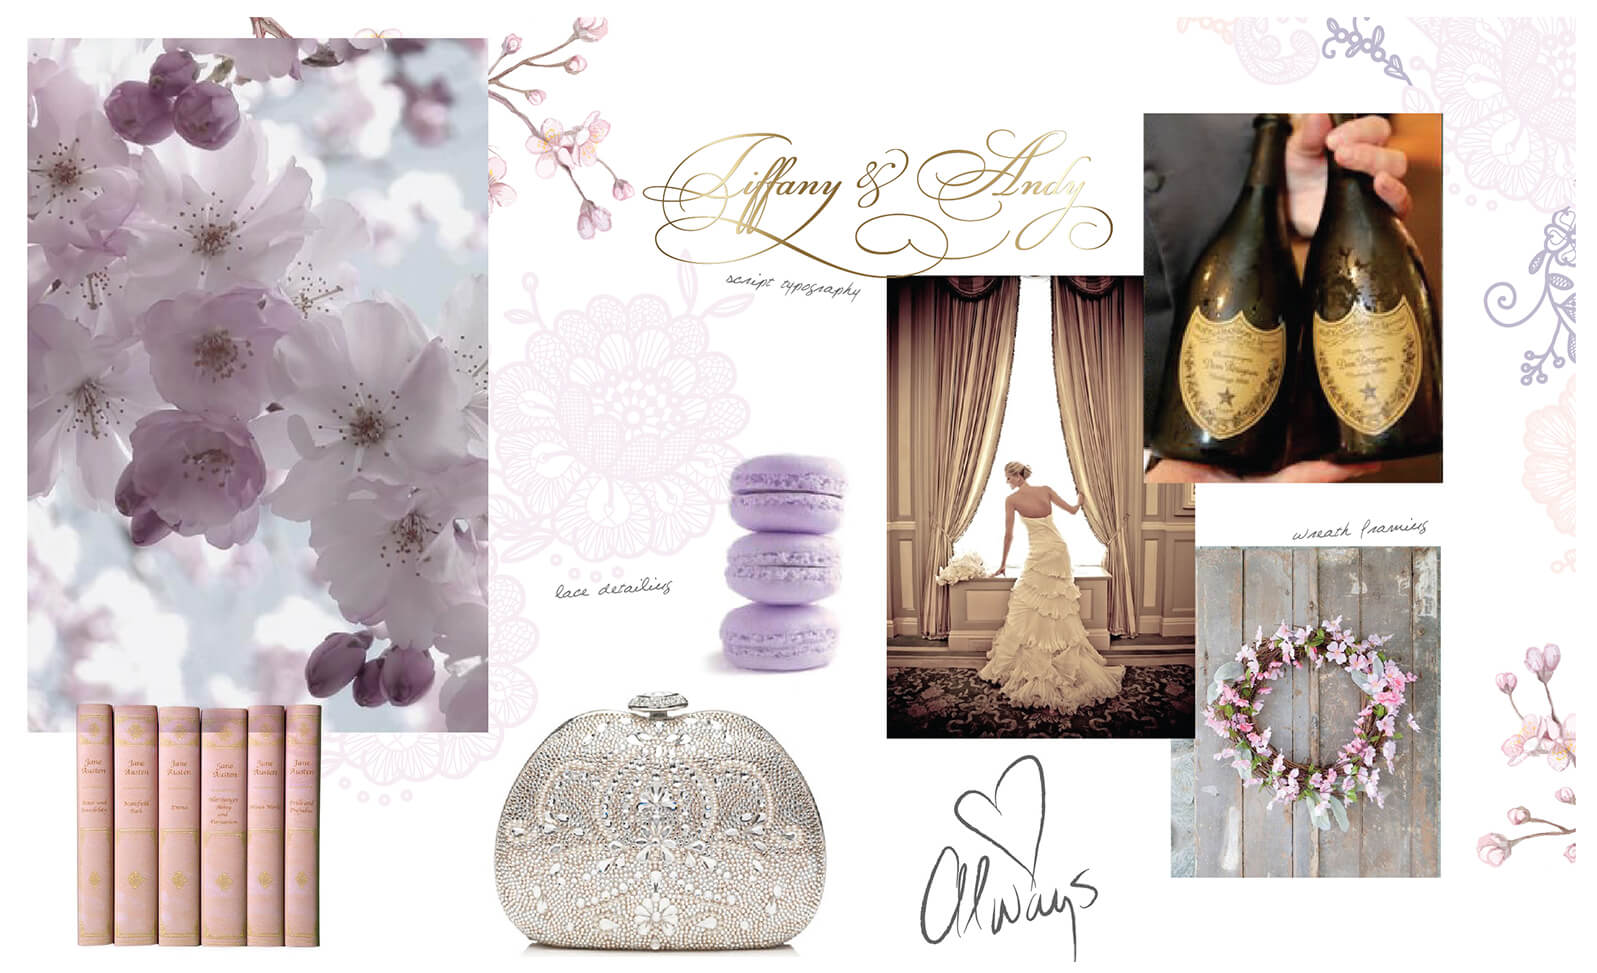 Delicate romantic details and plum blossom florals